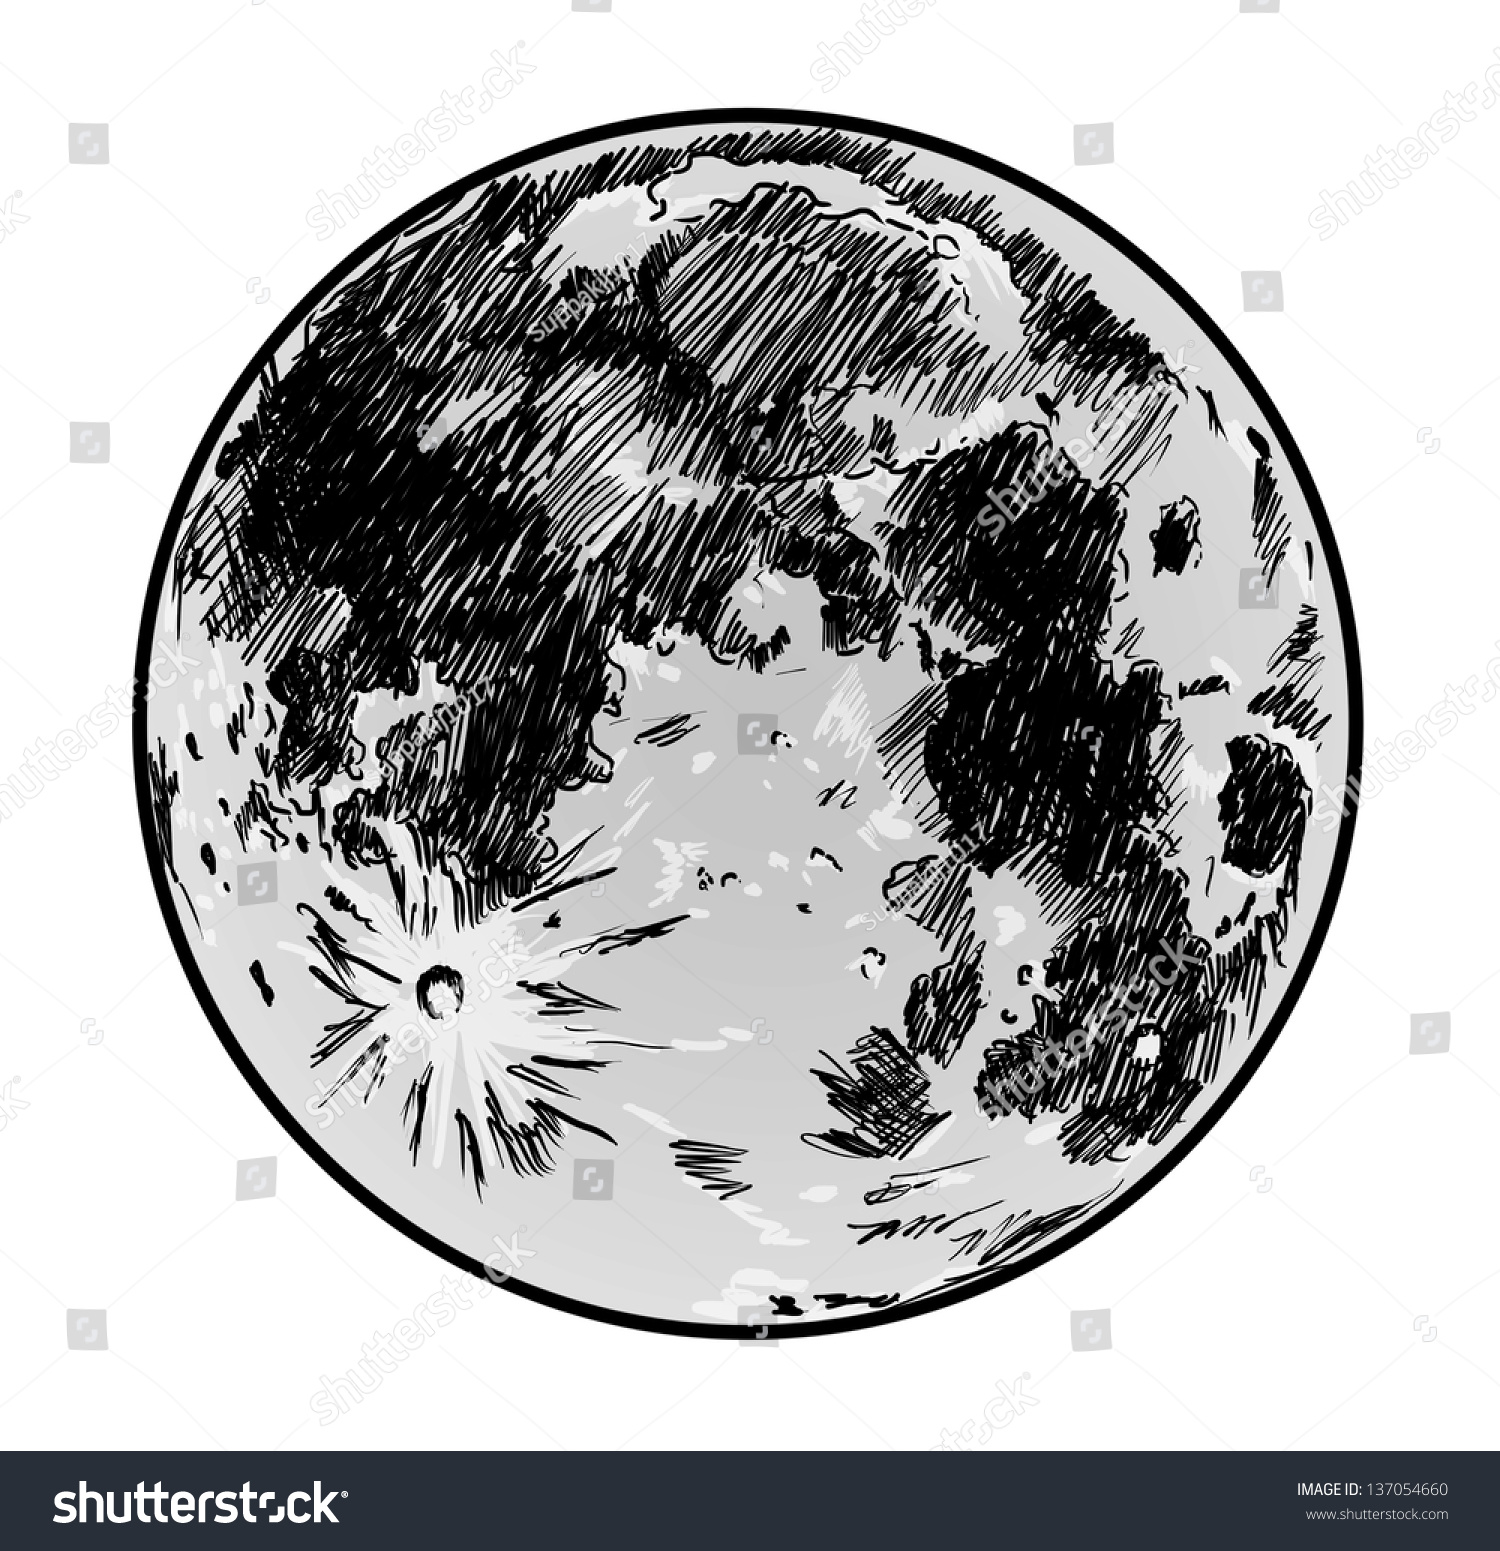 Full Moon Drawing Black And White Moon Drawing On White Background Stock Illustration